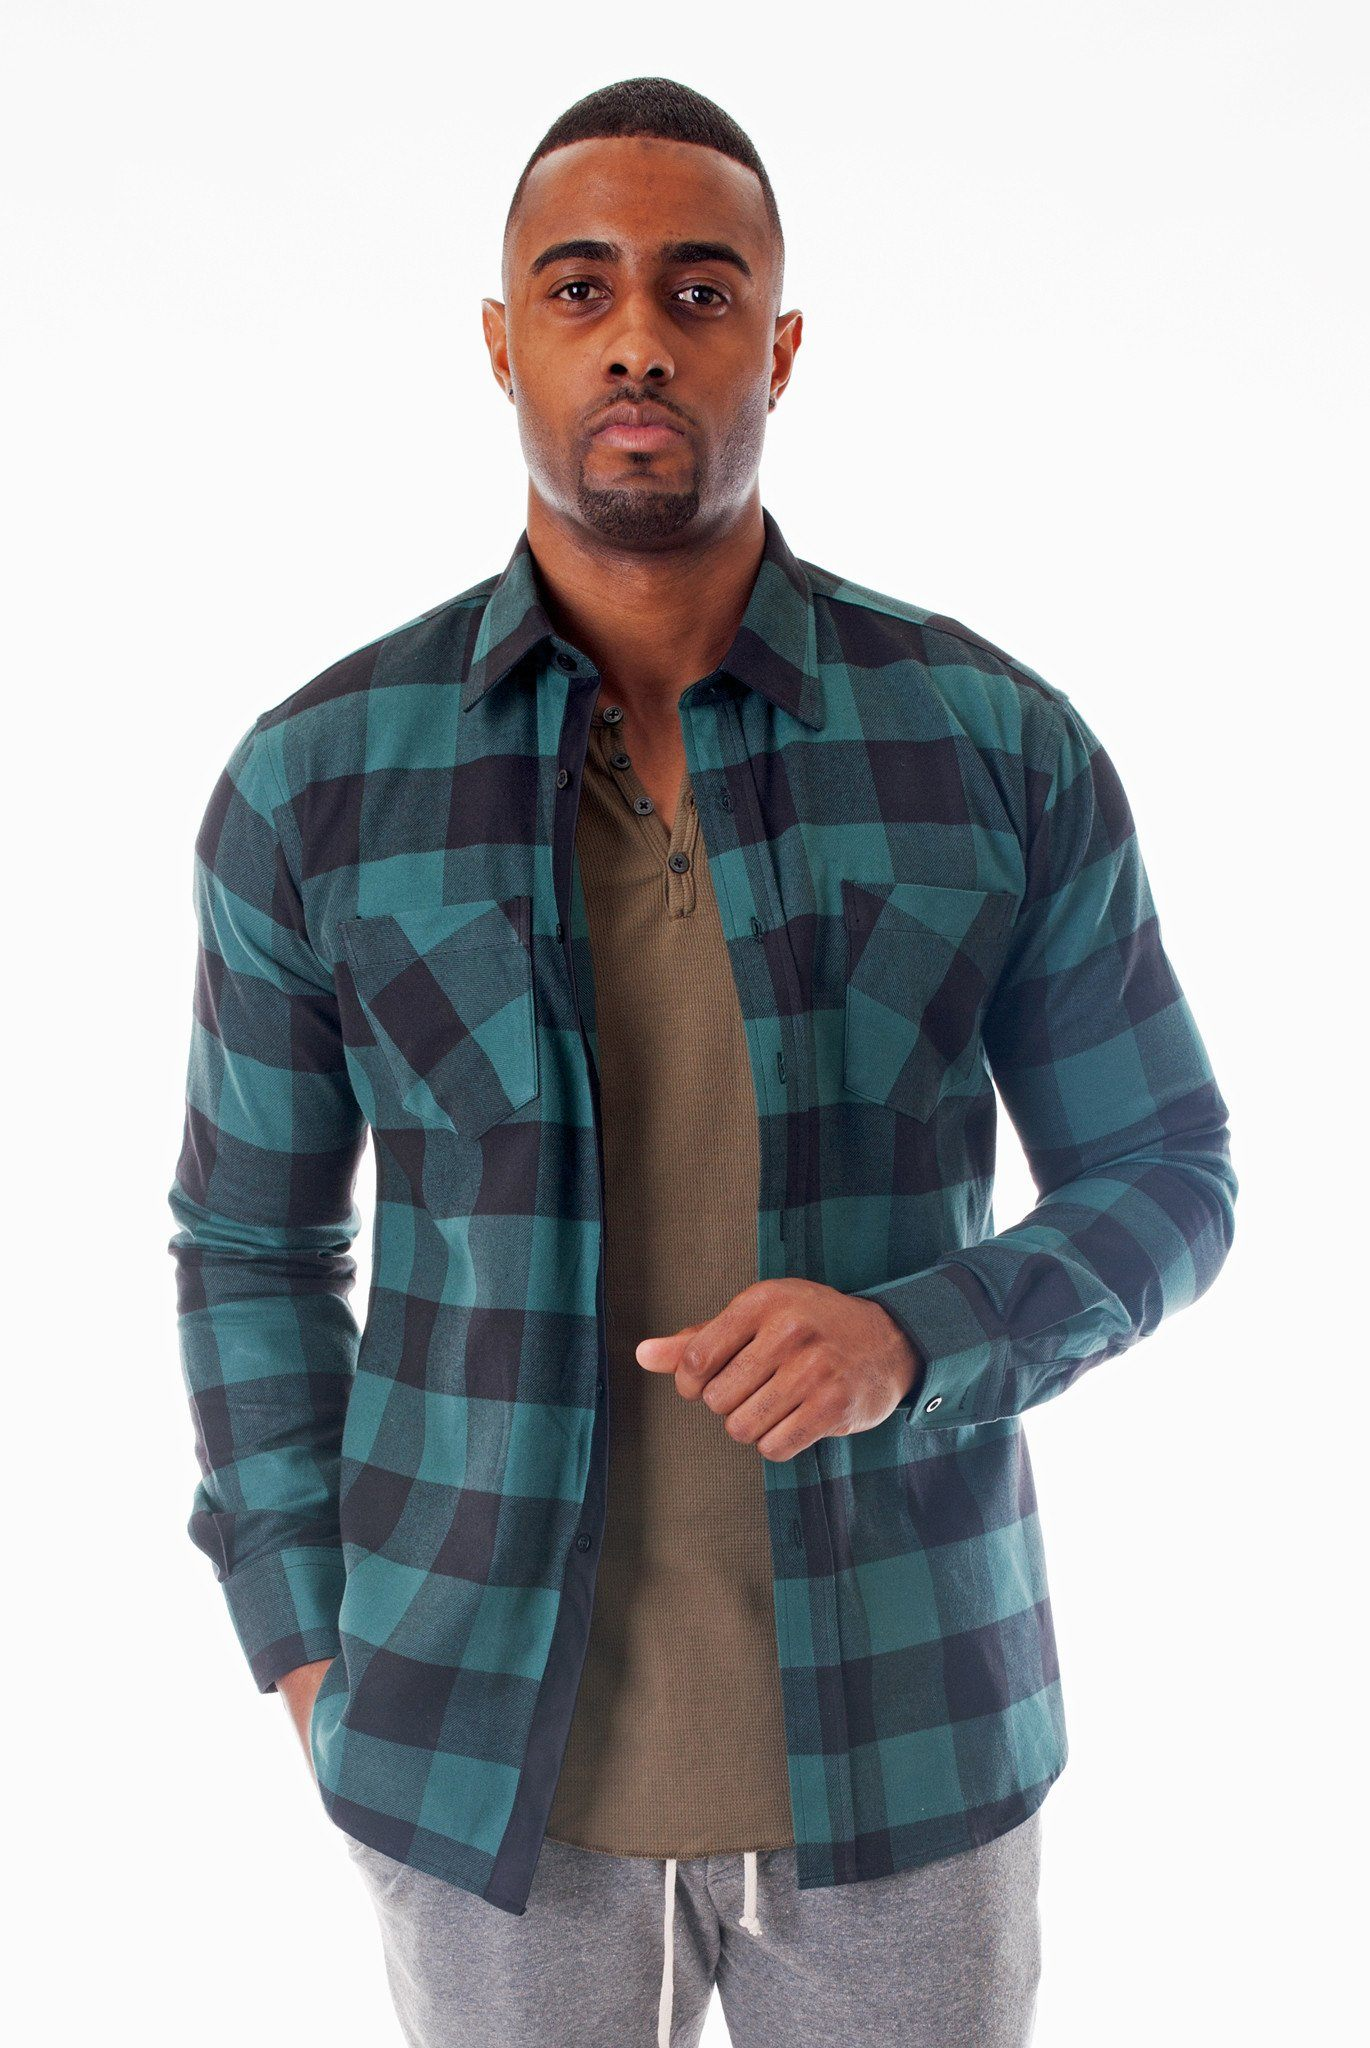 GREEN/BLACK CALIFORNIA PLAID SHIRT | Poor Little Rich Boy Clothing